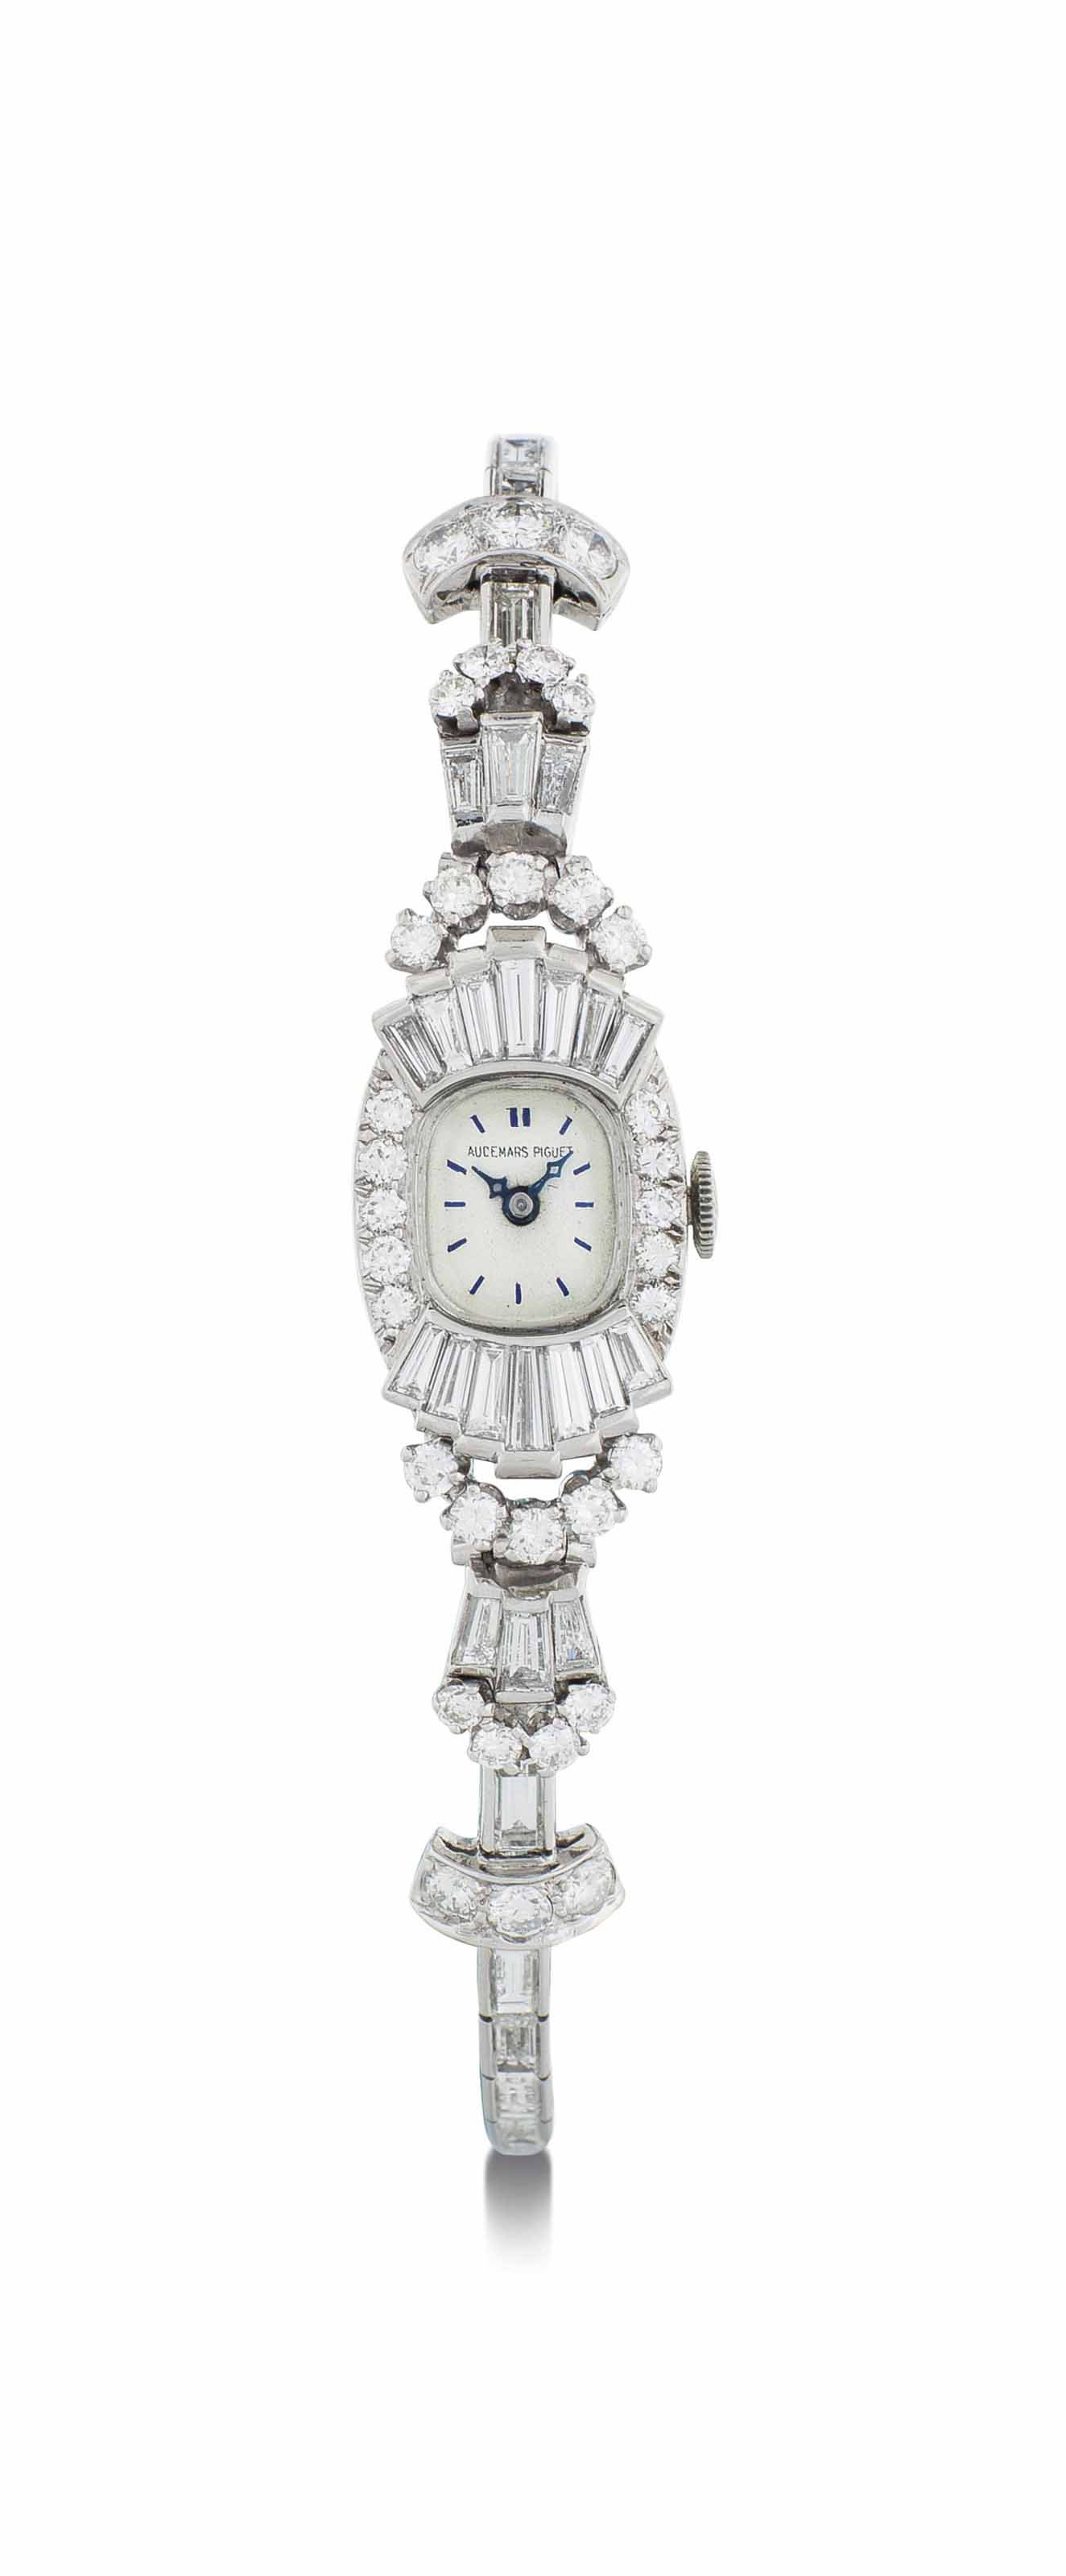 Audemars Piguet. A Lady's Platinum and Diamond-Set Bracelet Watch with American Case